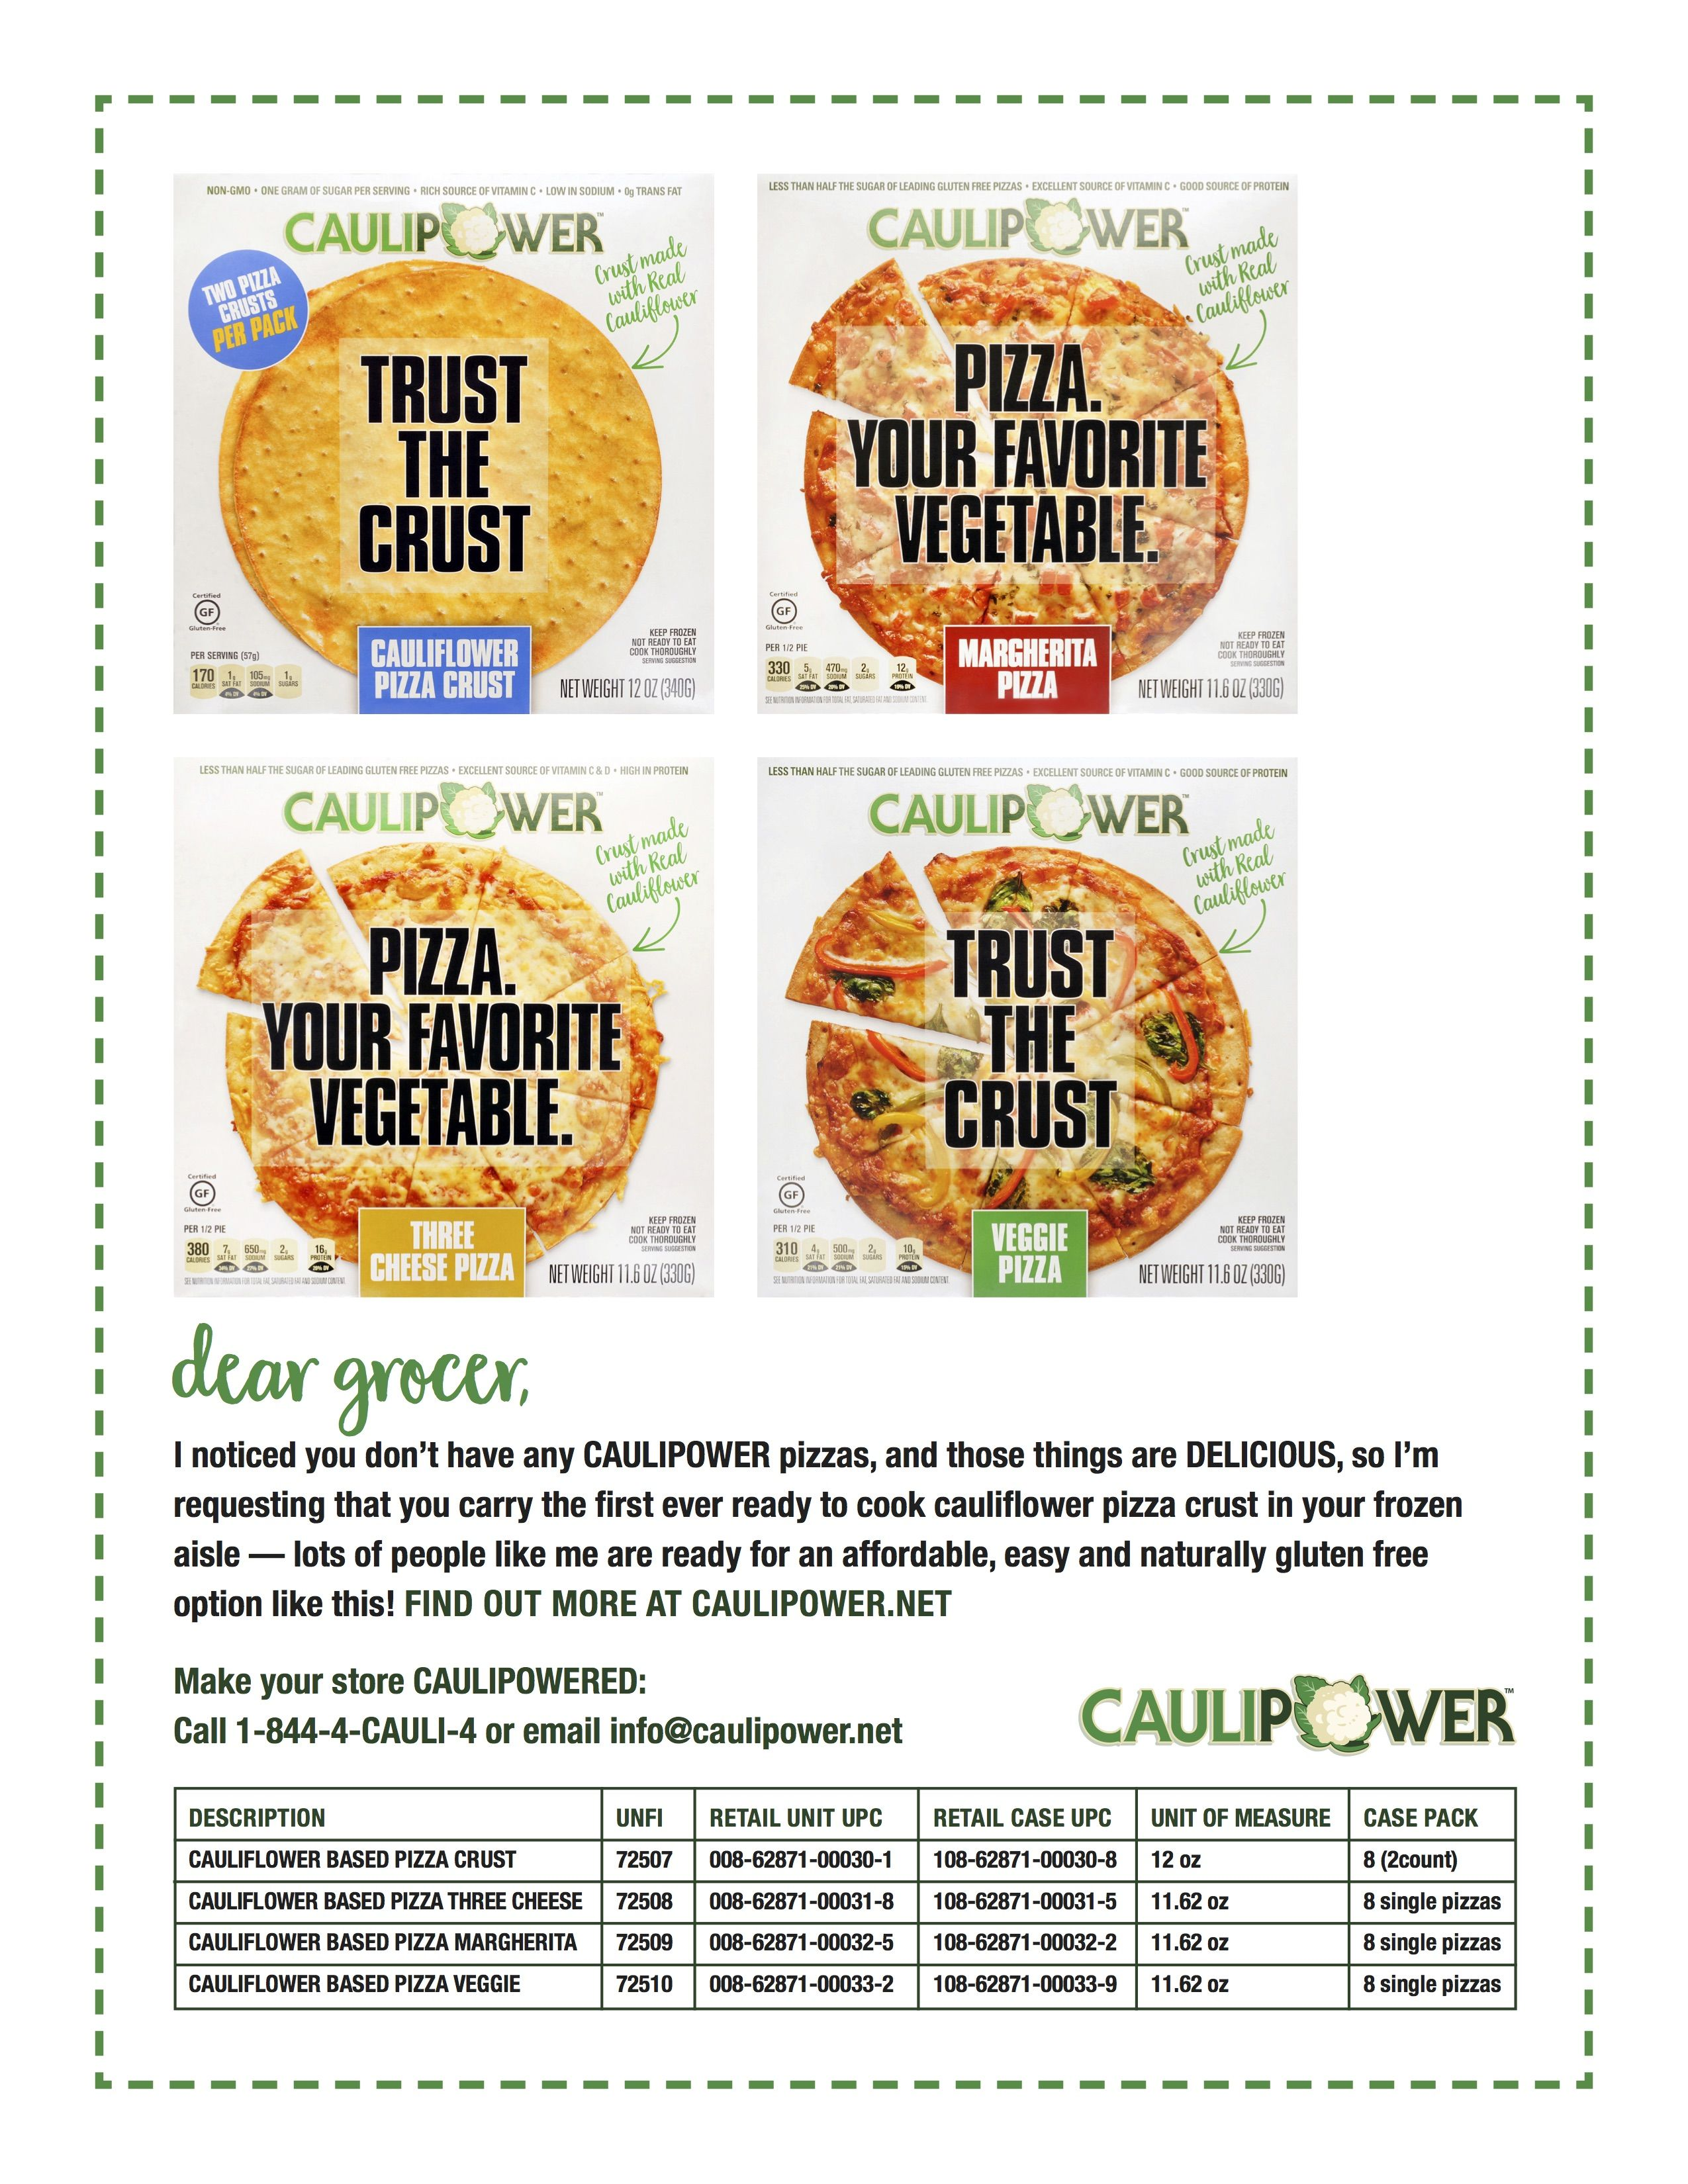 request Caulipower from your grocer